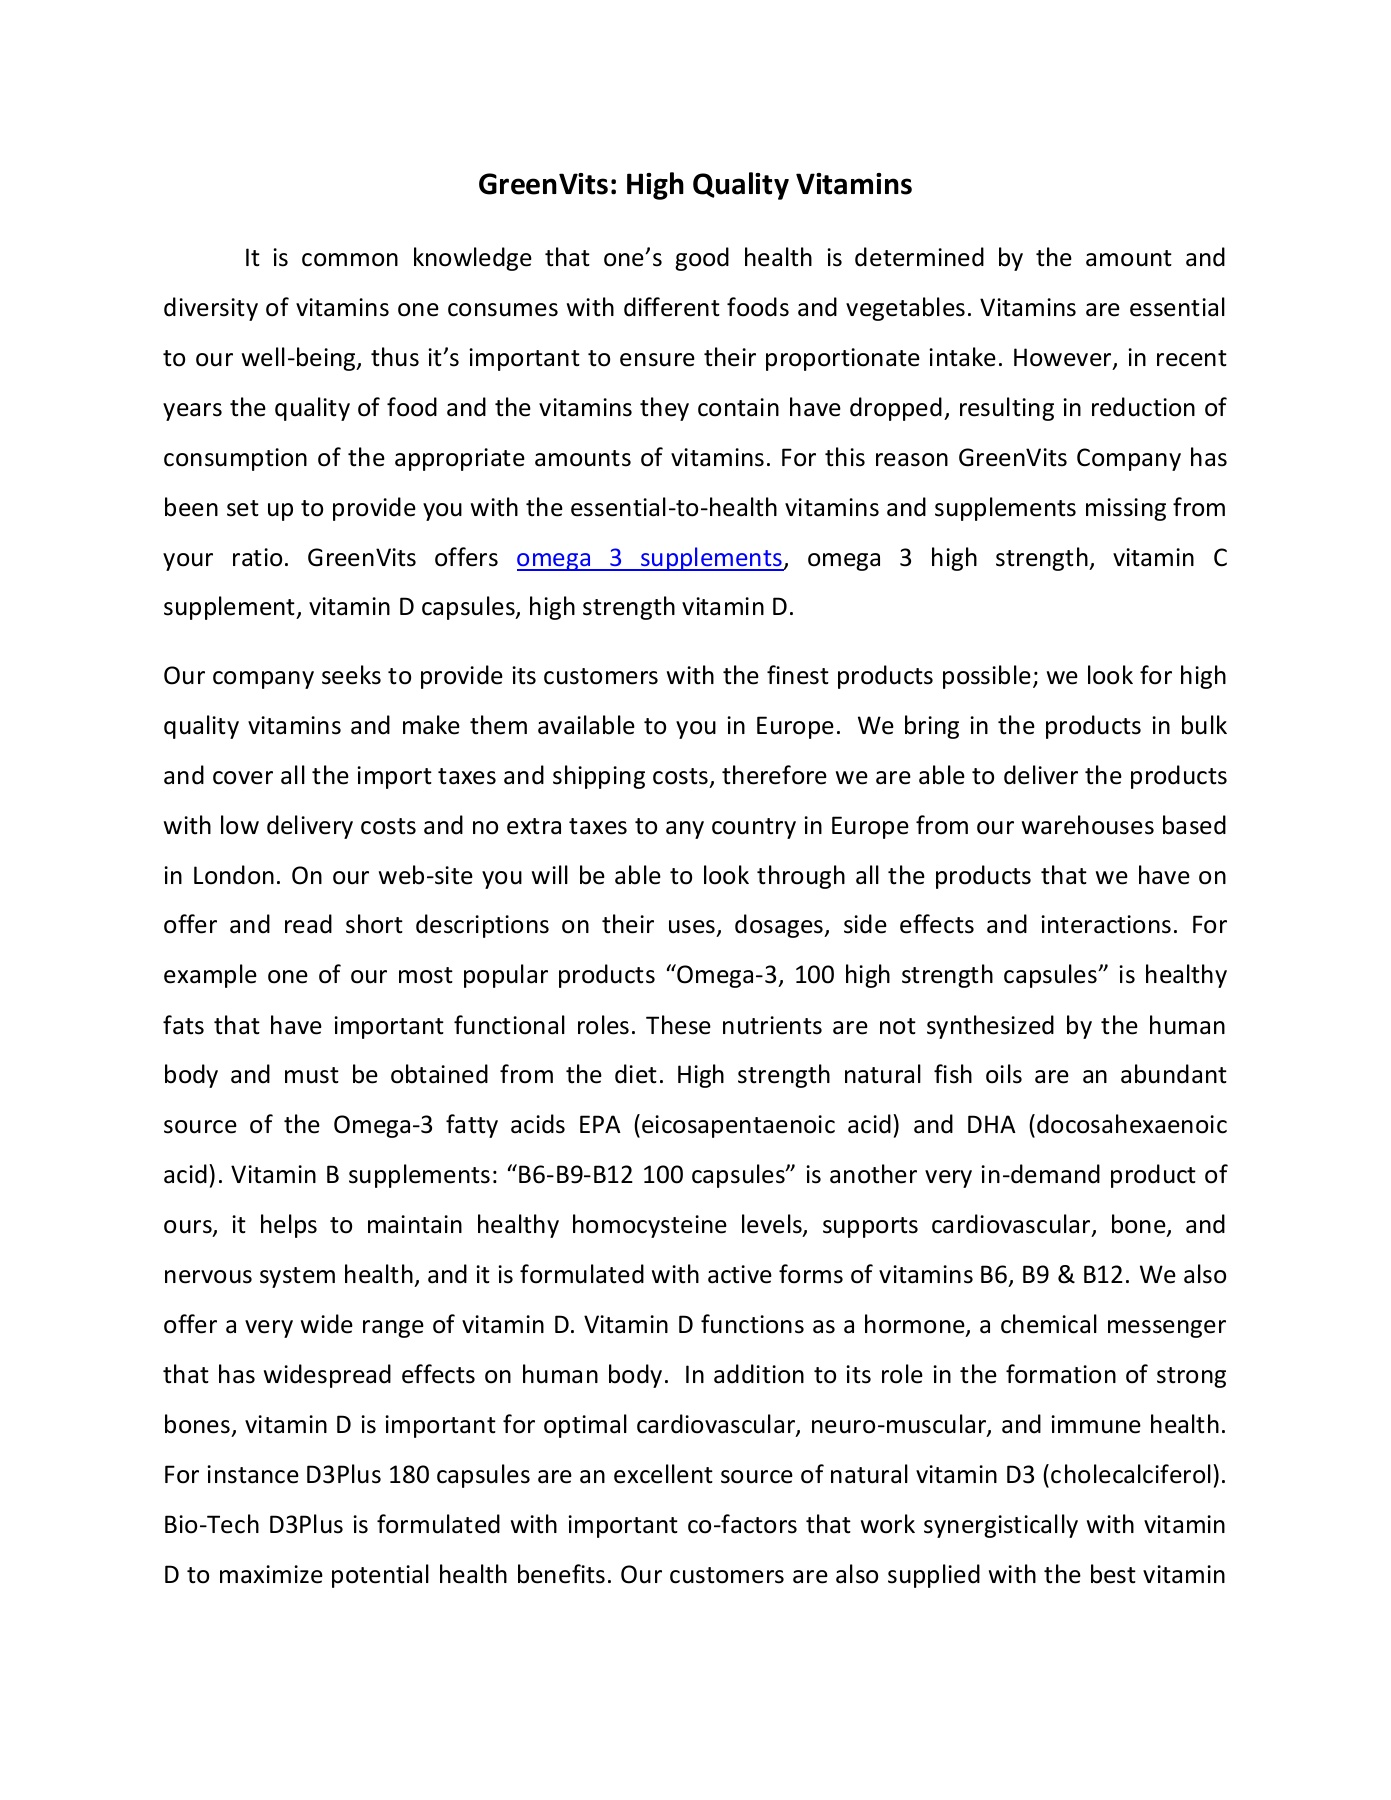 GreenVits: High Quality Vitamins Pages 1 - 2 - Text Version